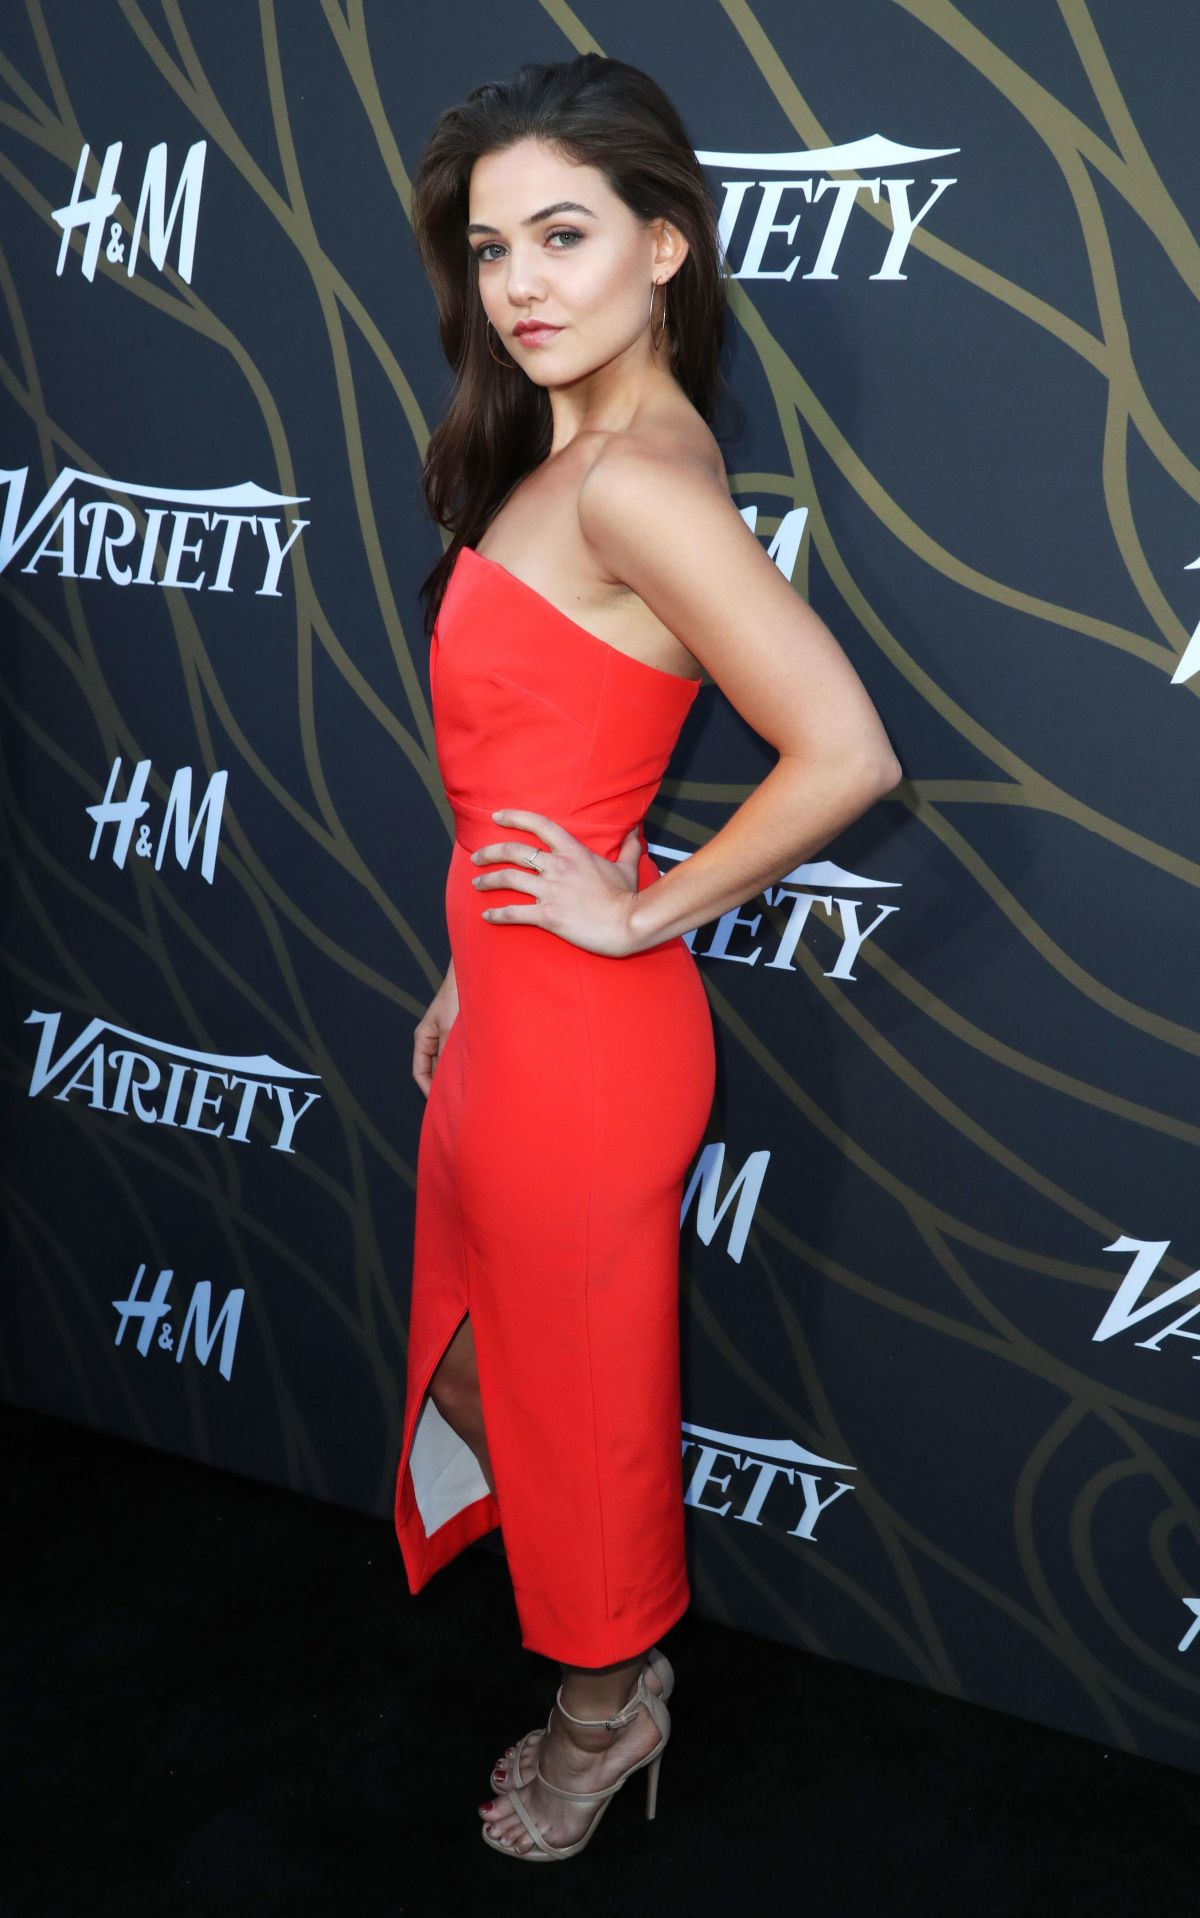 DANIELLE CAMPBELL at Variety Power of Young Hollywood in Los Angeles 08/08/2017